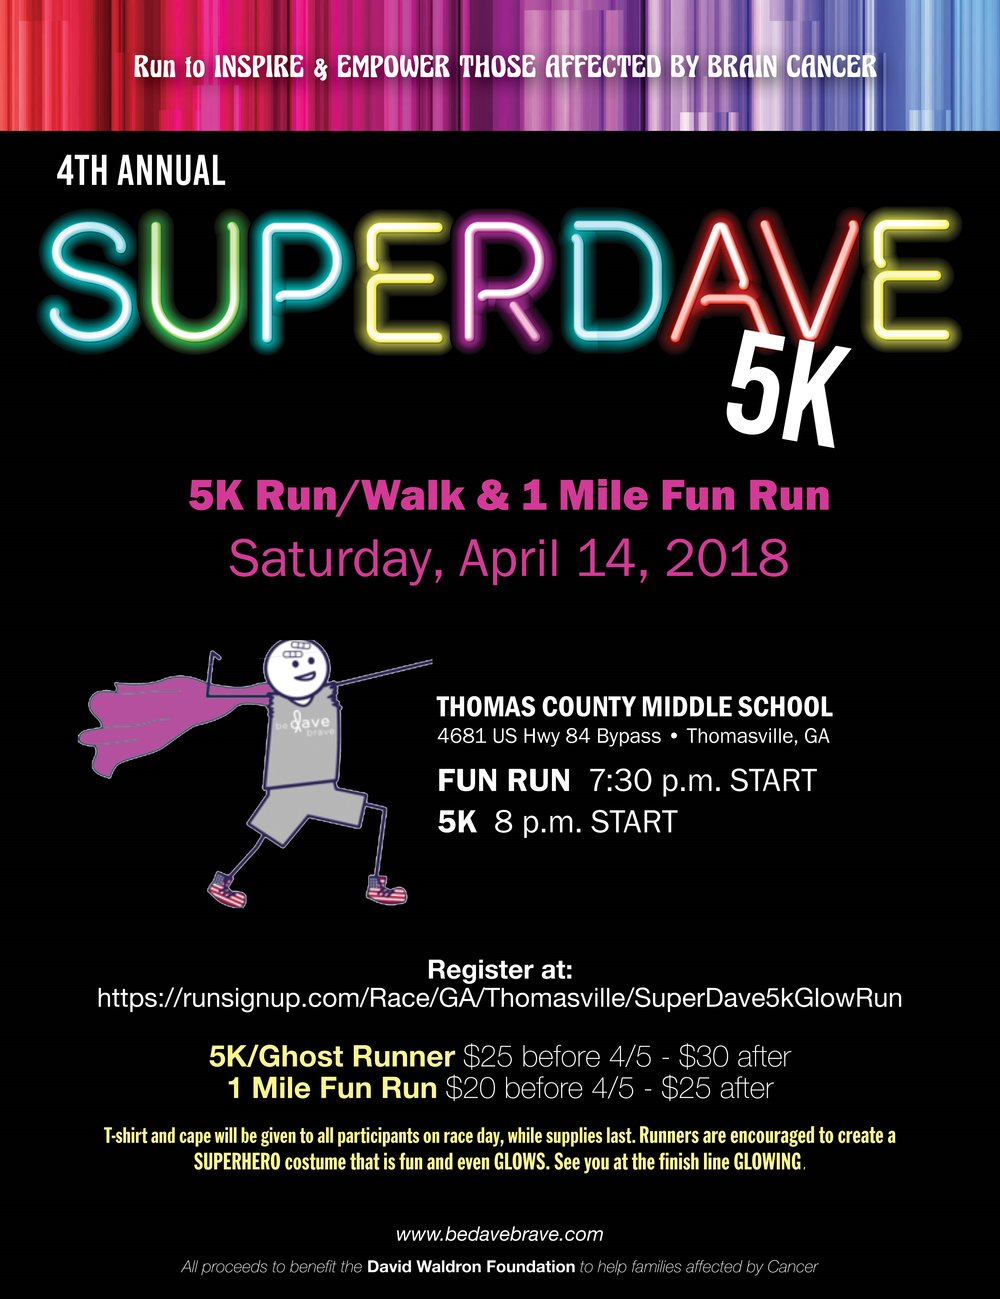 Join us for the 4th Annual Super Dave 5K! - Register here:https://runsignup.com/Race/GA/Thomasville/SuperDave5kGlowRun